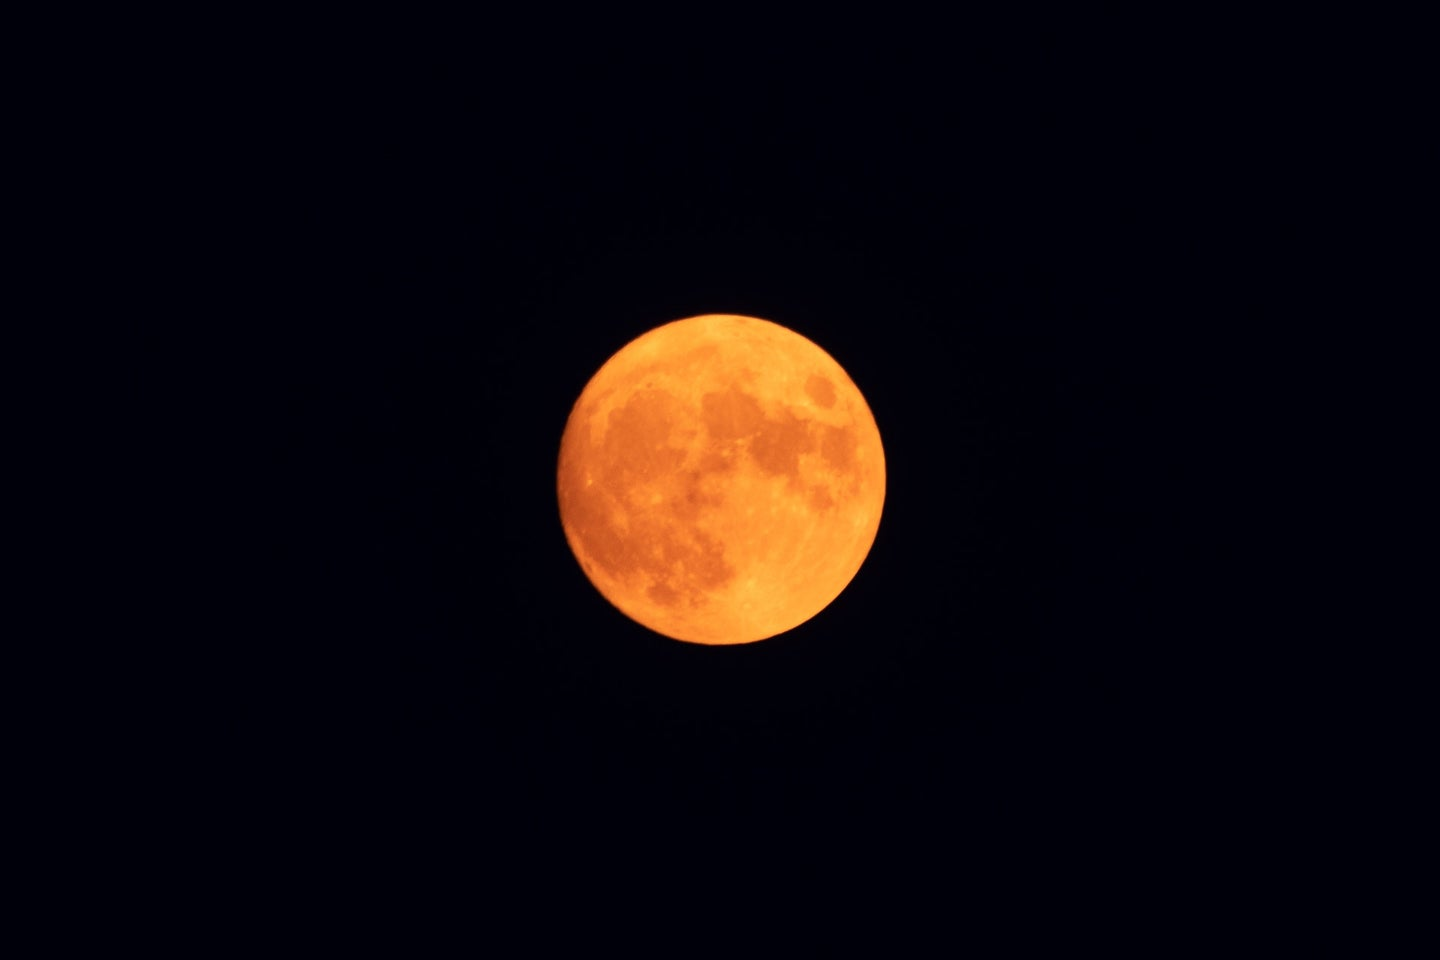 A red full moon.